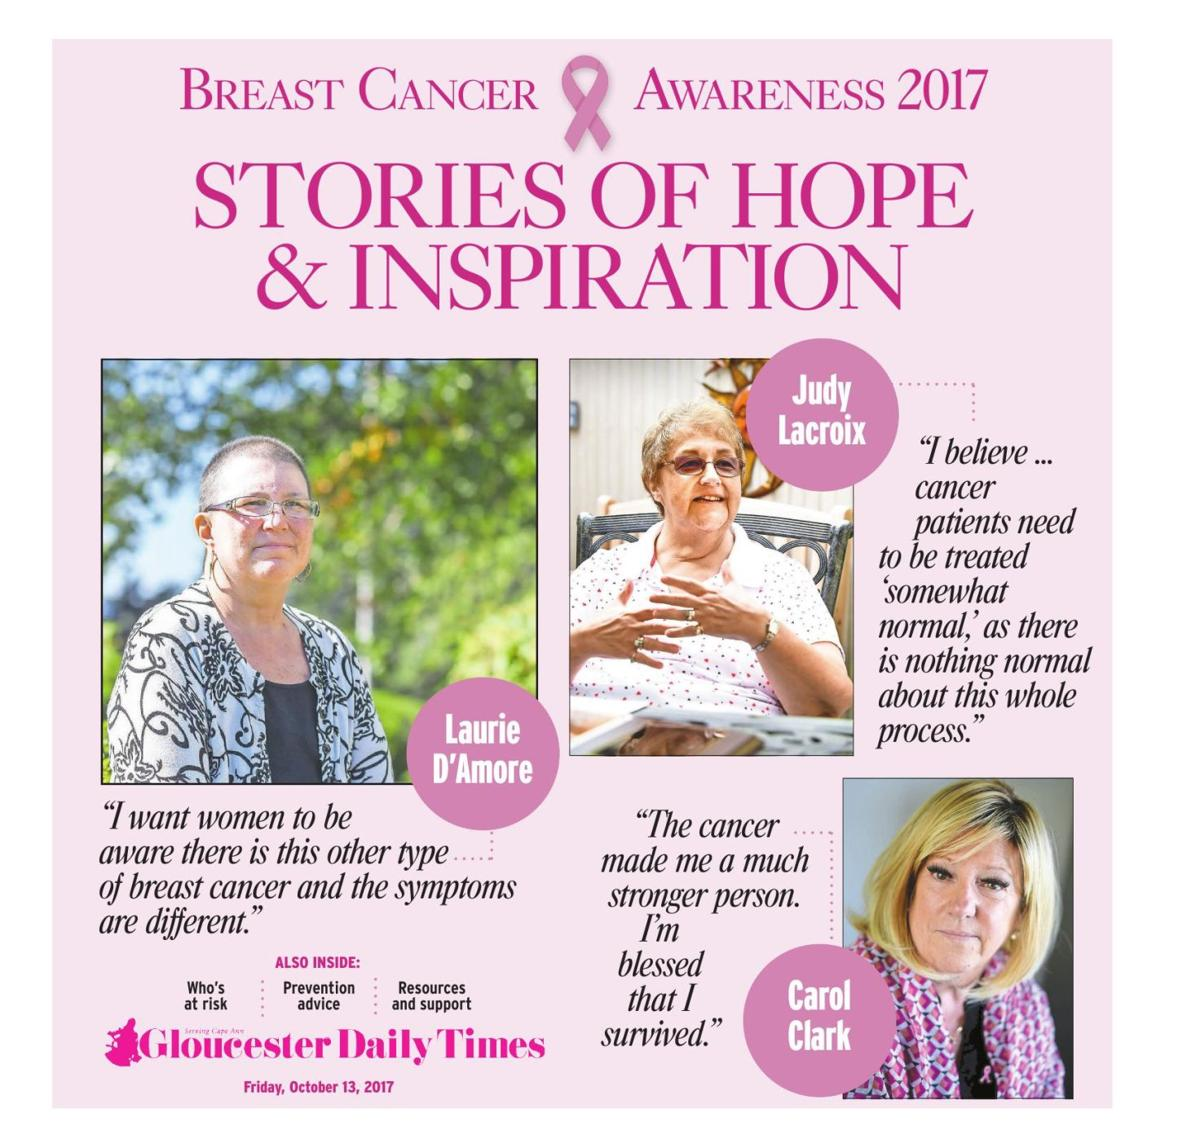 Breast Cancer Awareness 2017